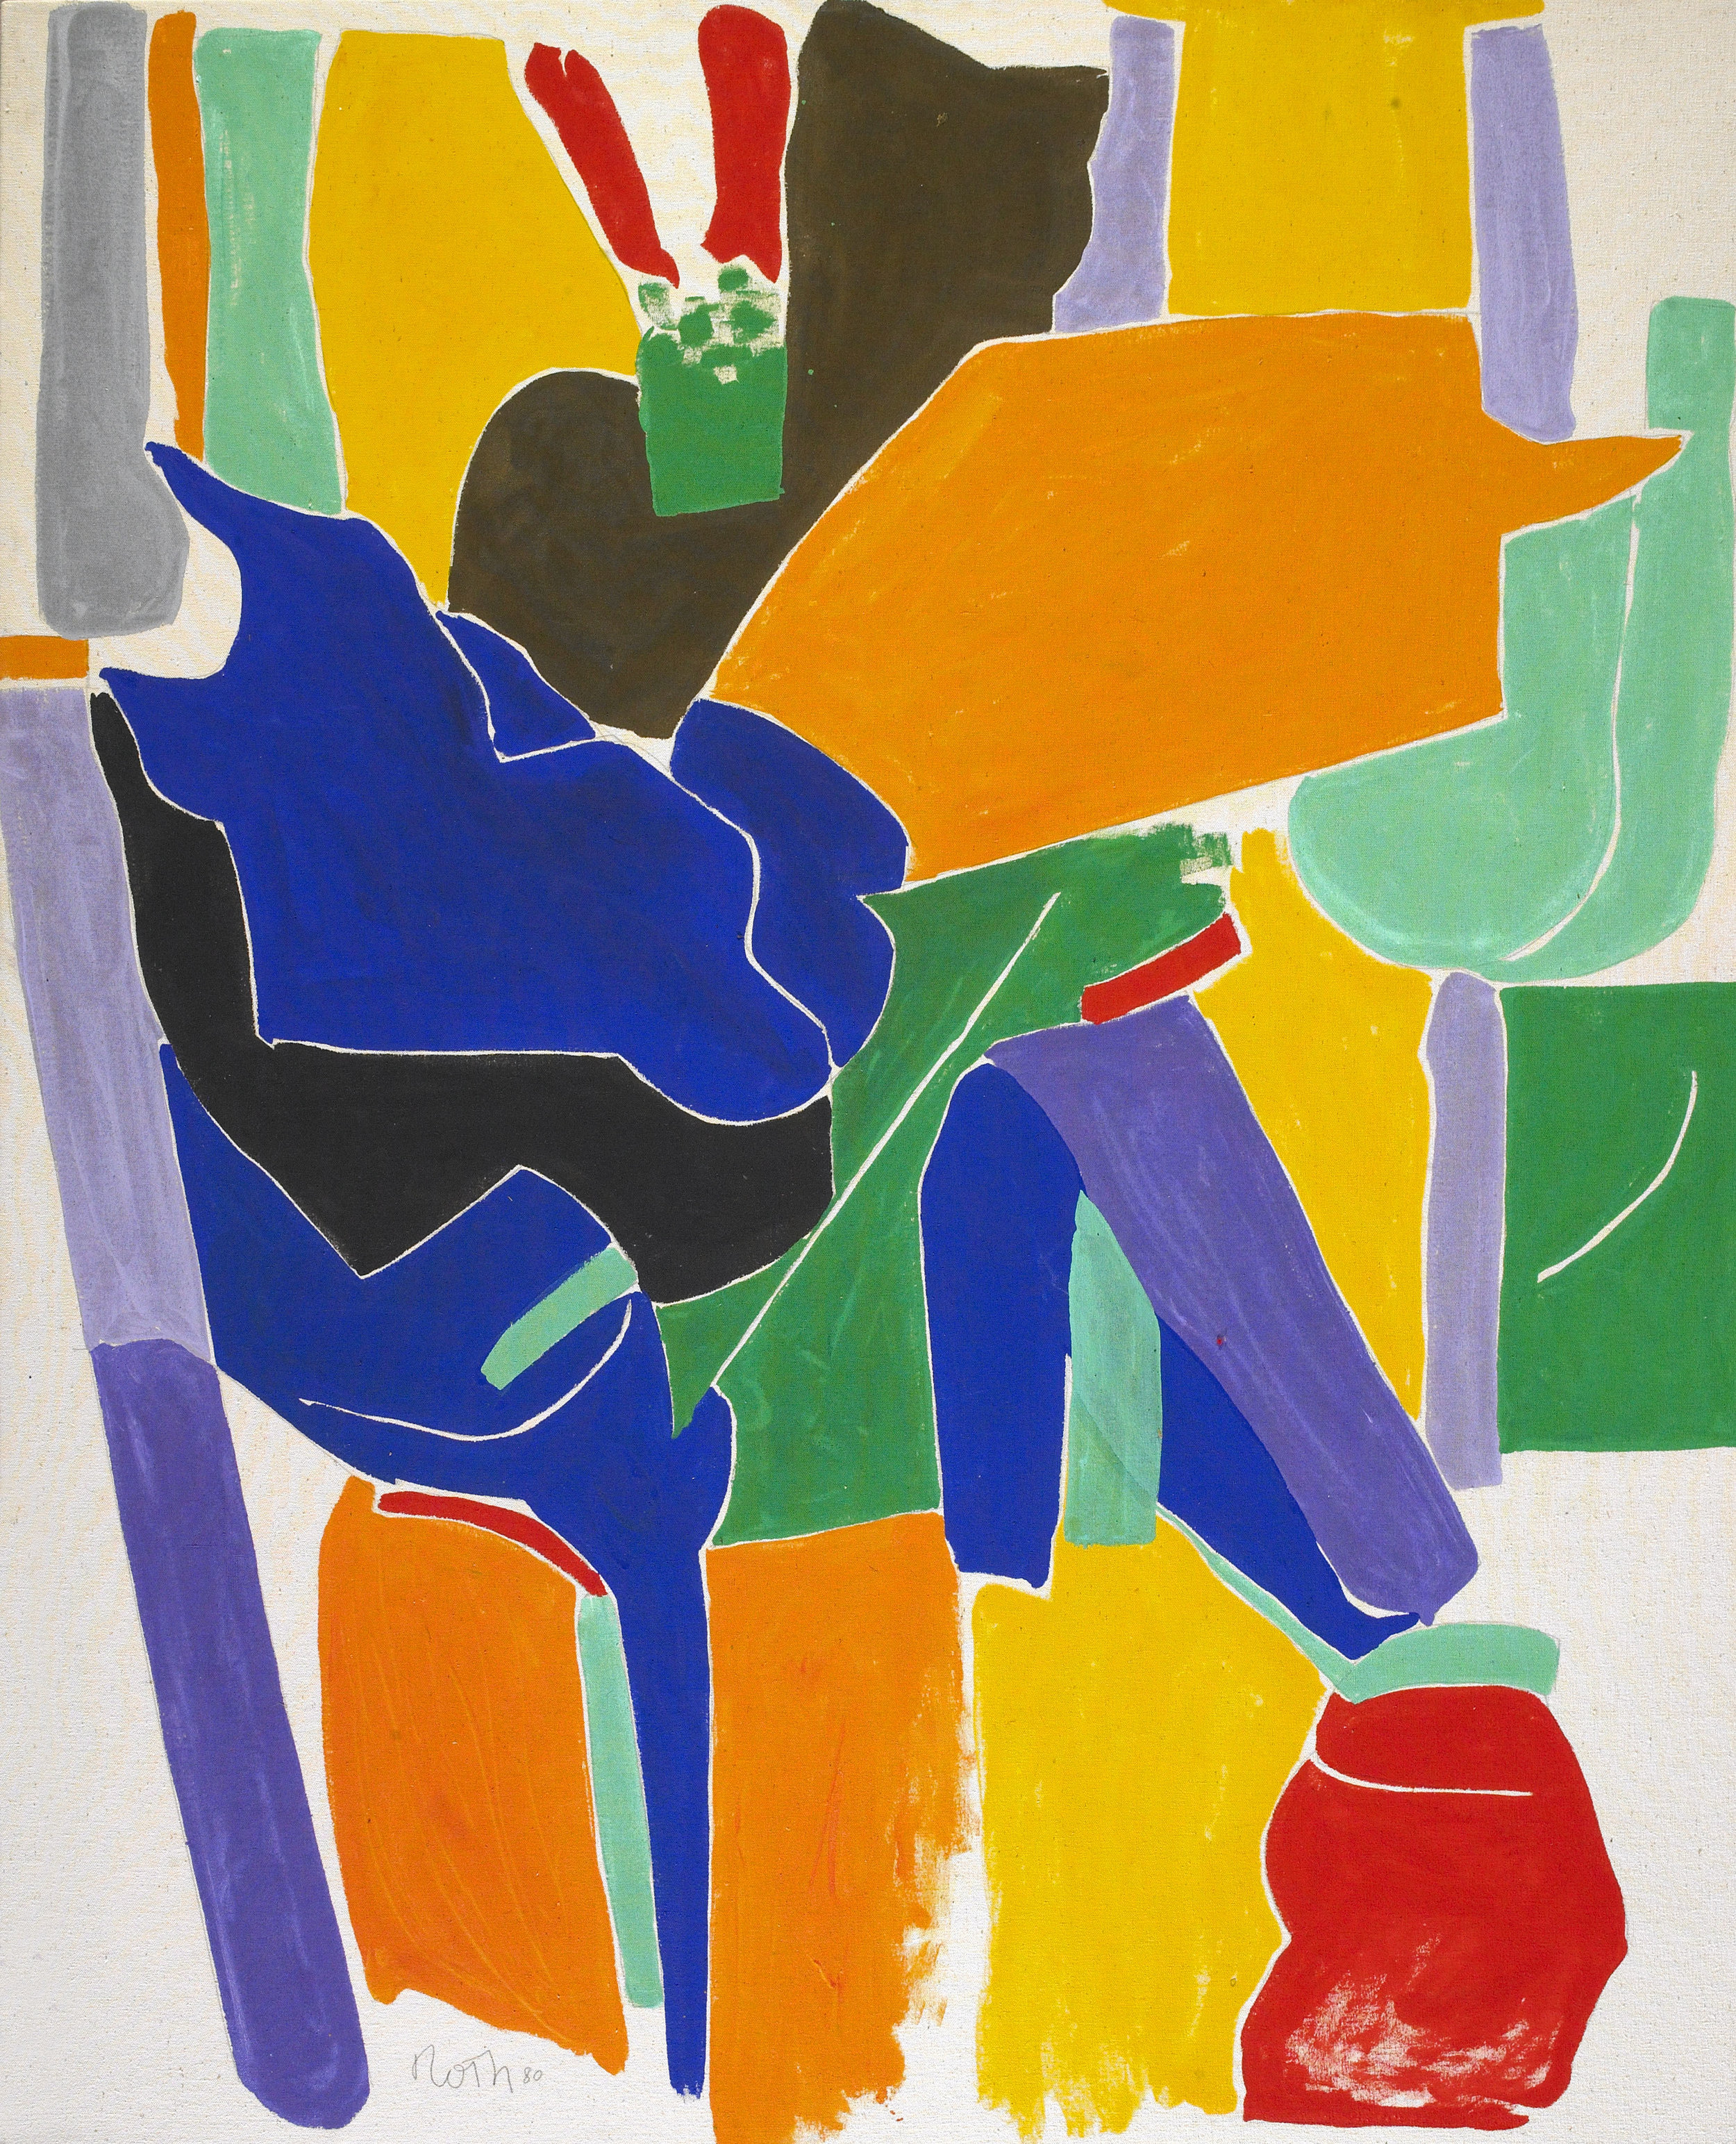 Rope Dancer,  1980, Acrylic on canvas, 54 1/2 x 45 inches